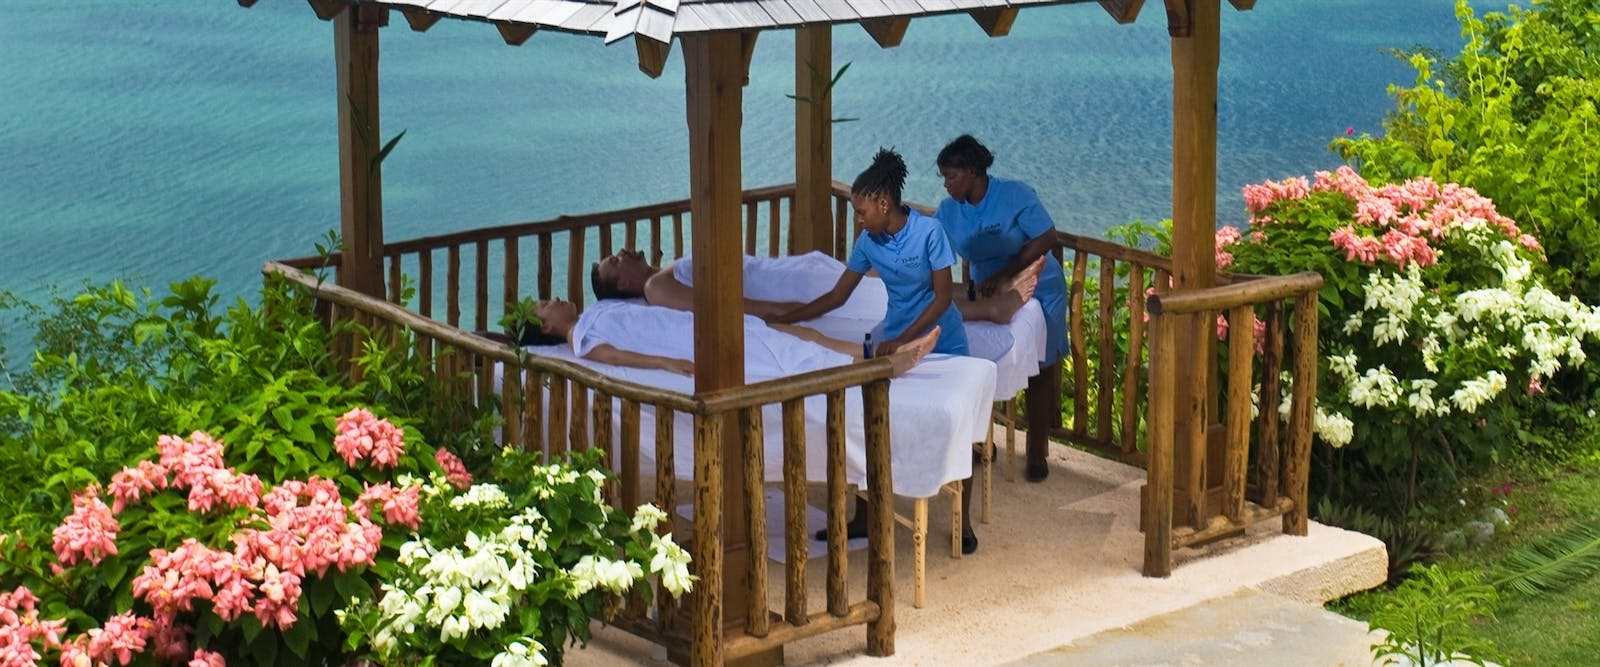 Couples Massage in the Gazebo at Calabash Cove, St Lucia